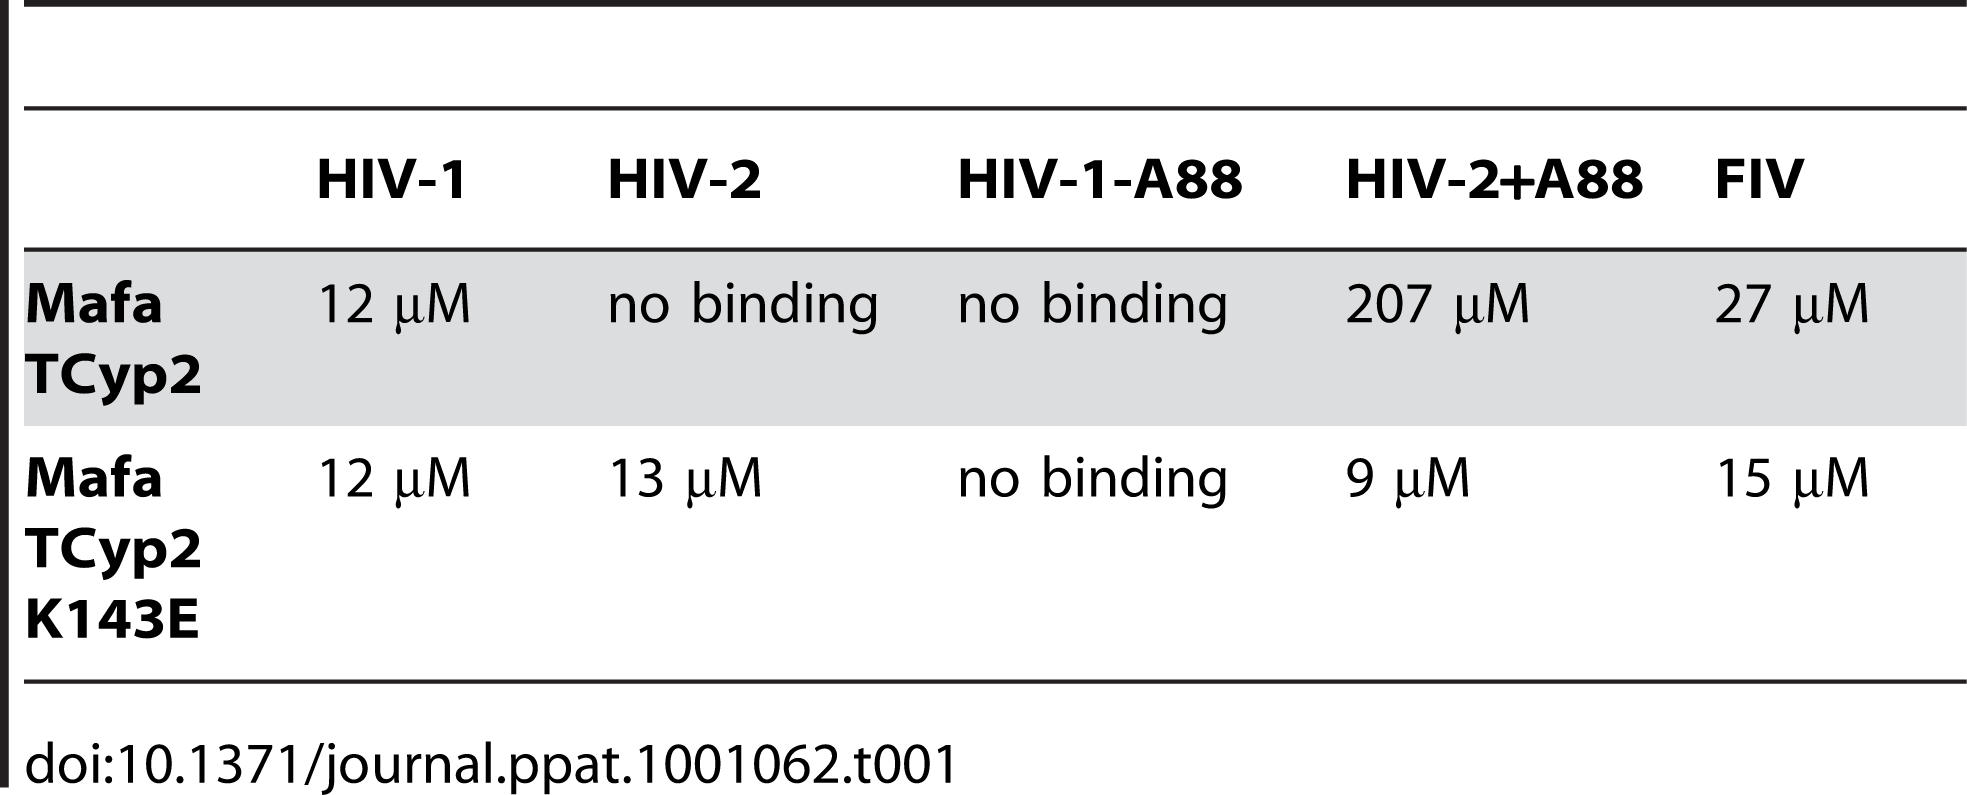 Affinities of cyclophilin domain binding to N terminal domain capsids, as measured by isothermal titration calorimetry, are shown.